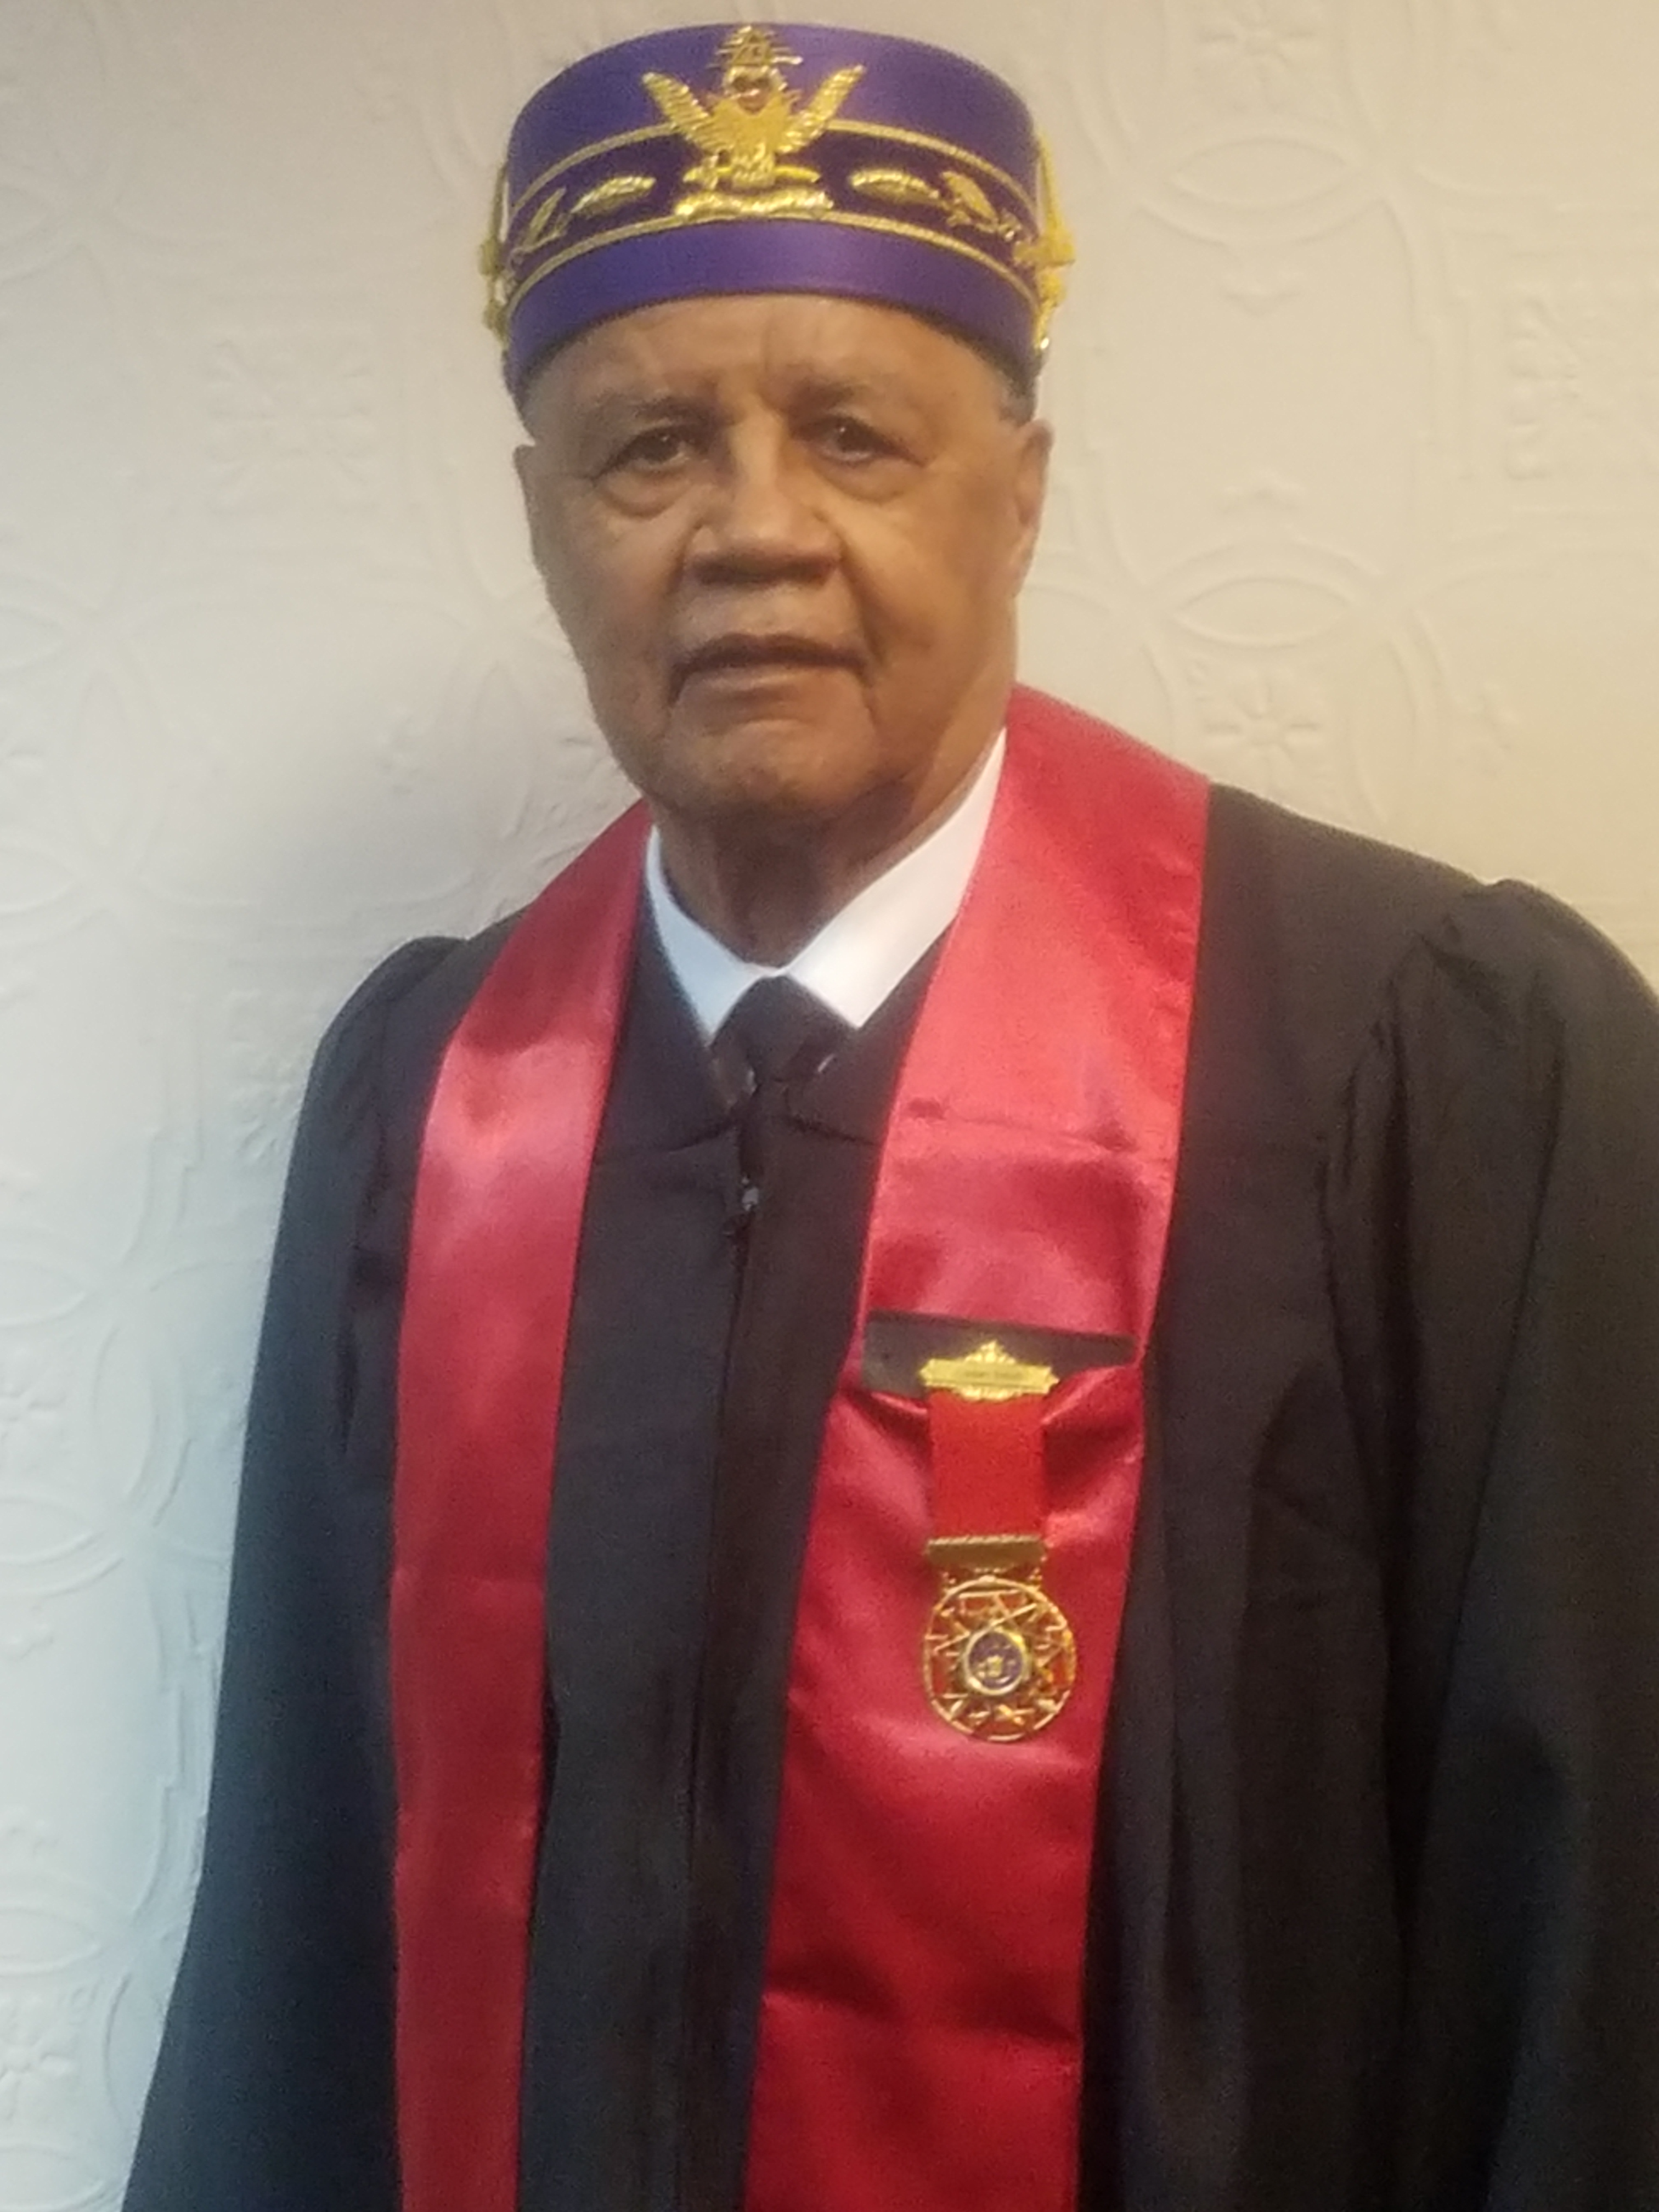 James Thomas Consistory Most Worshipful Prince Hall Grand Lodge Of